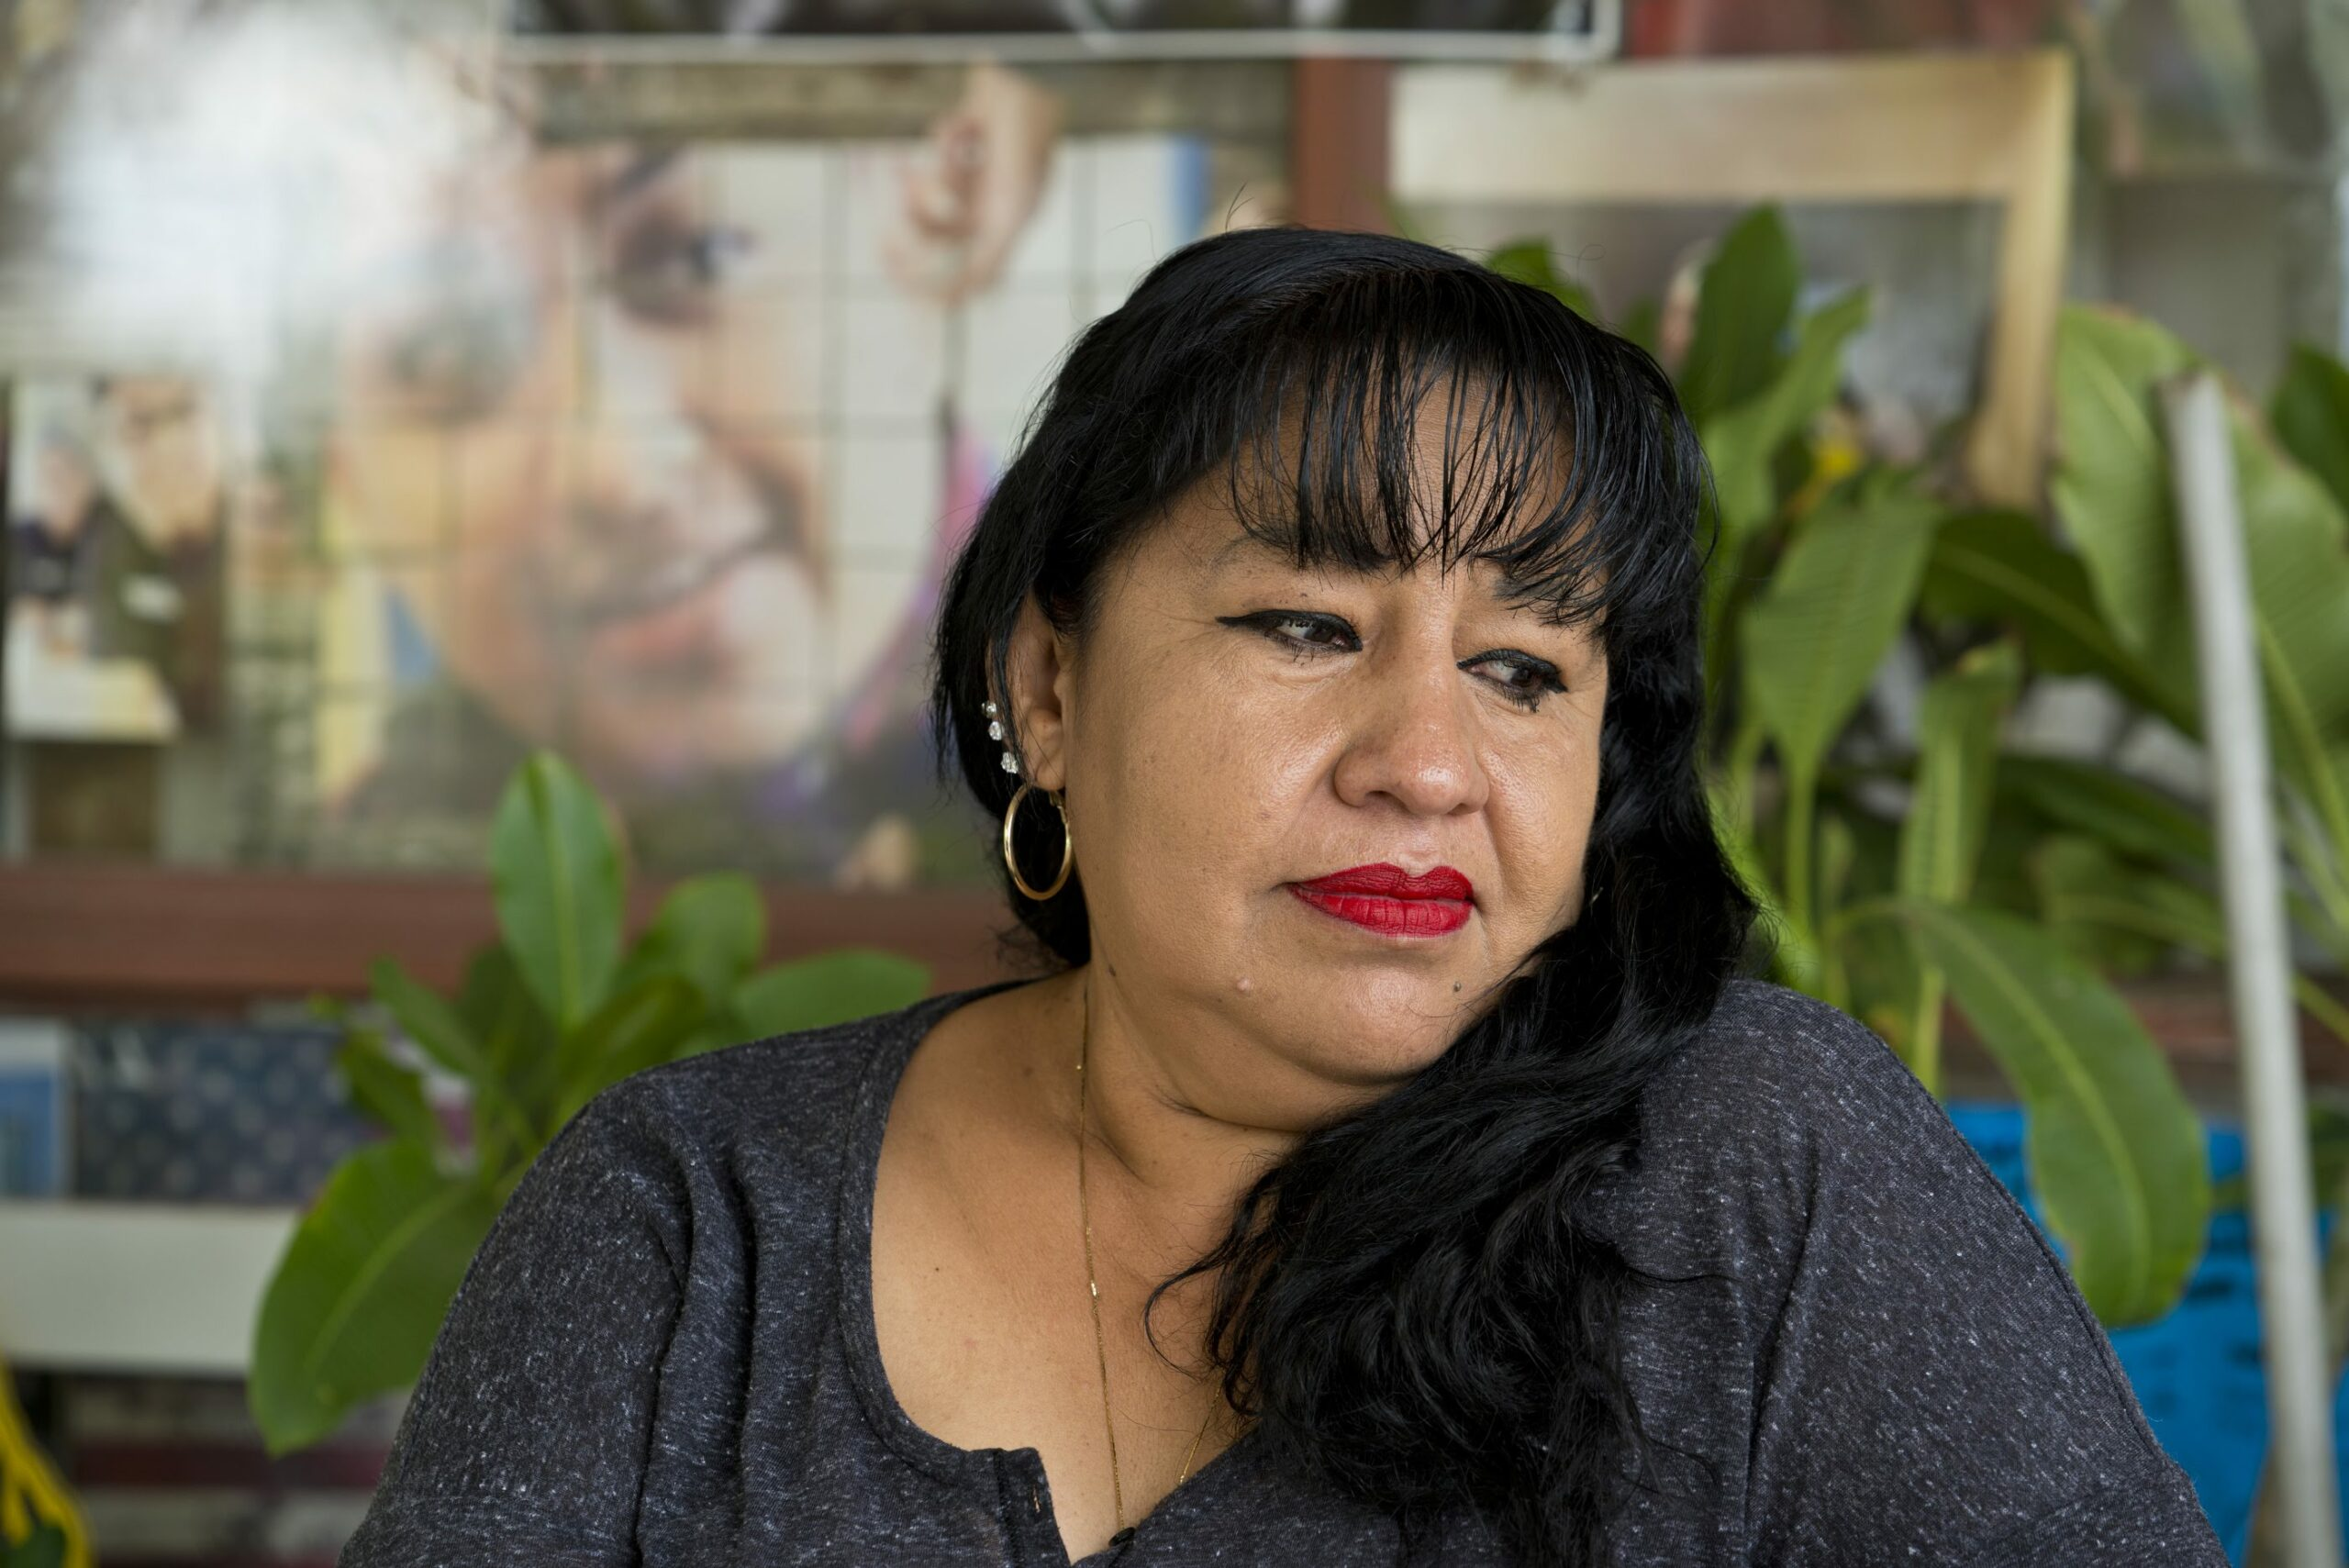 Angelica Cervantes, mother of Erick Silva who died during the October 1, 2017 Route 91 Harvest Festival shooting